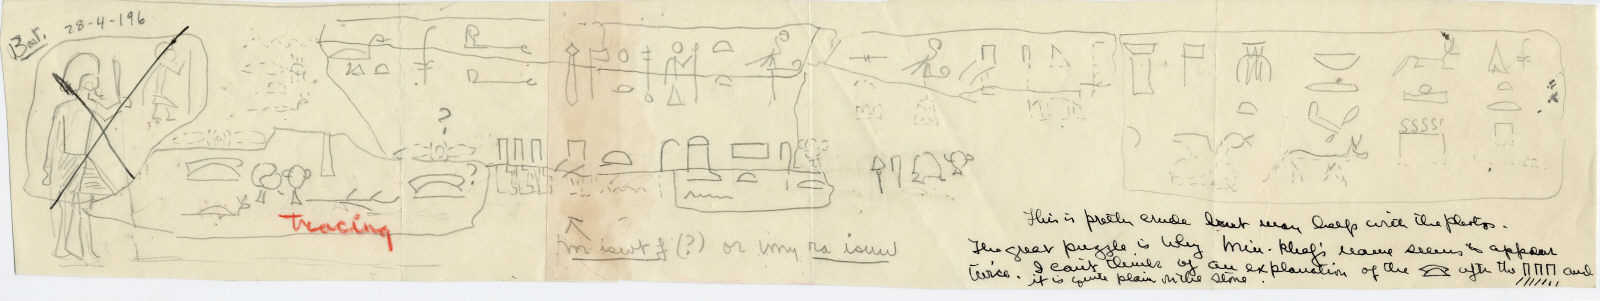 Drawings: Fragments of lintel of Minkhaf from Street G 7500 and G 7430-7440